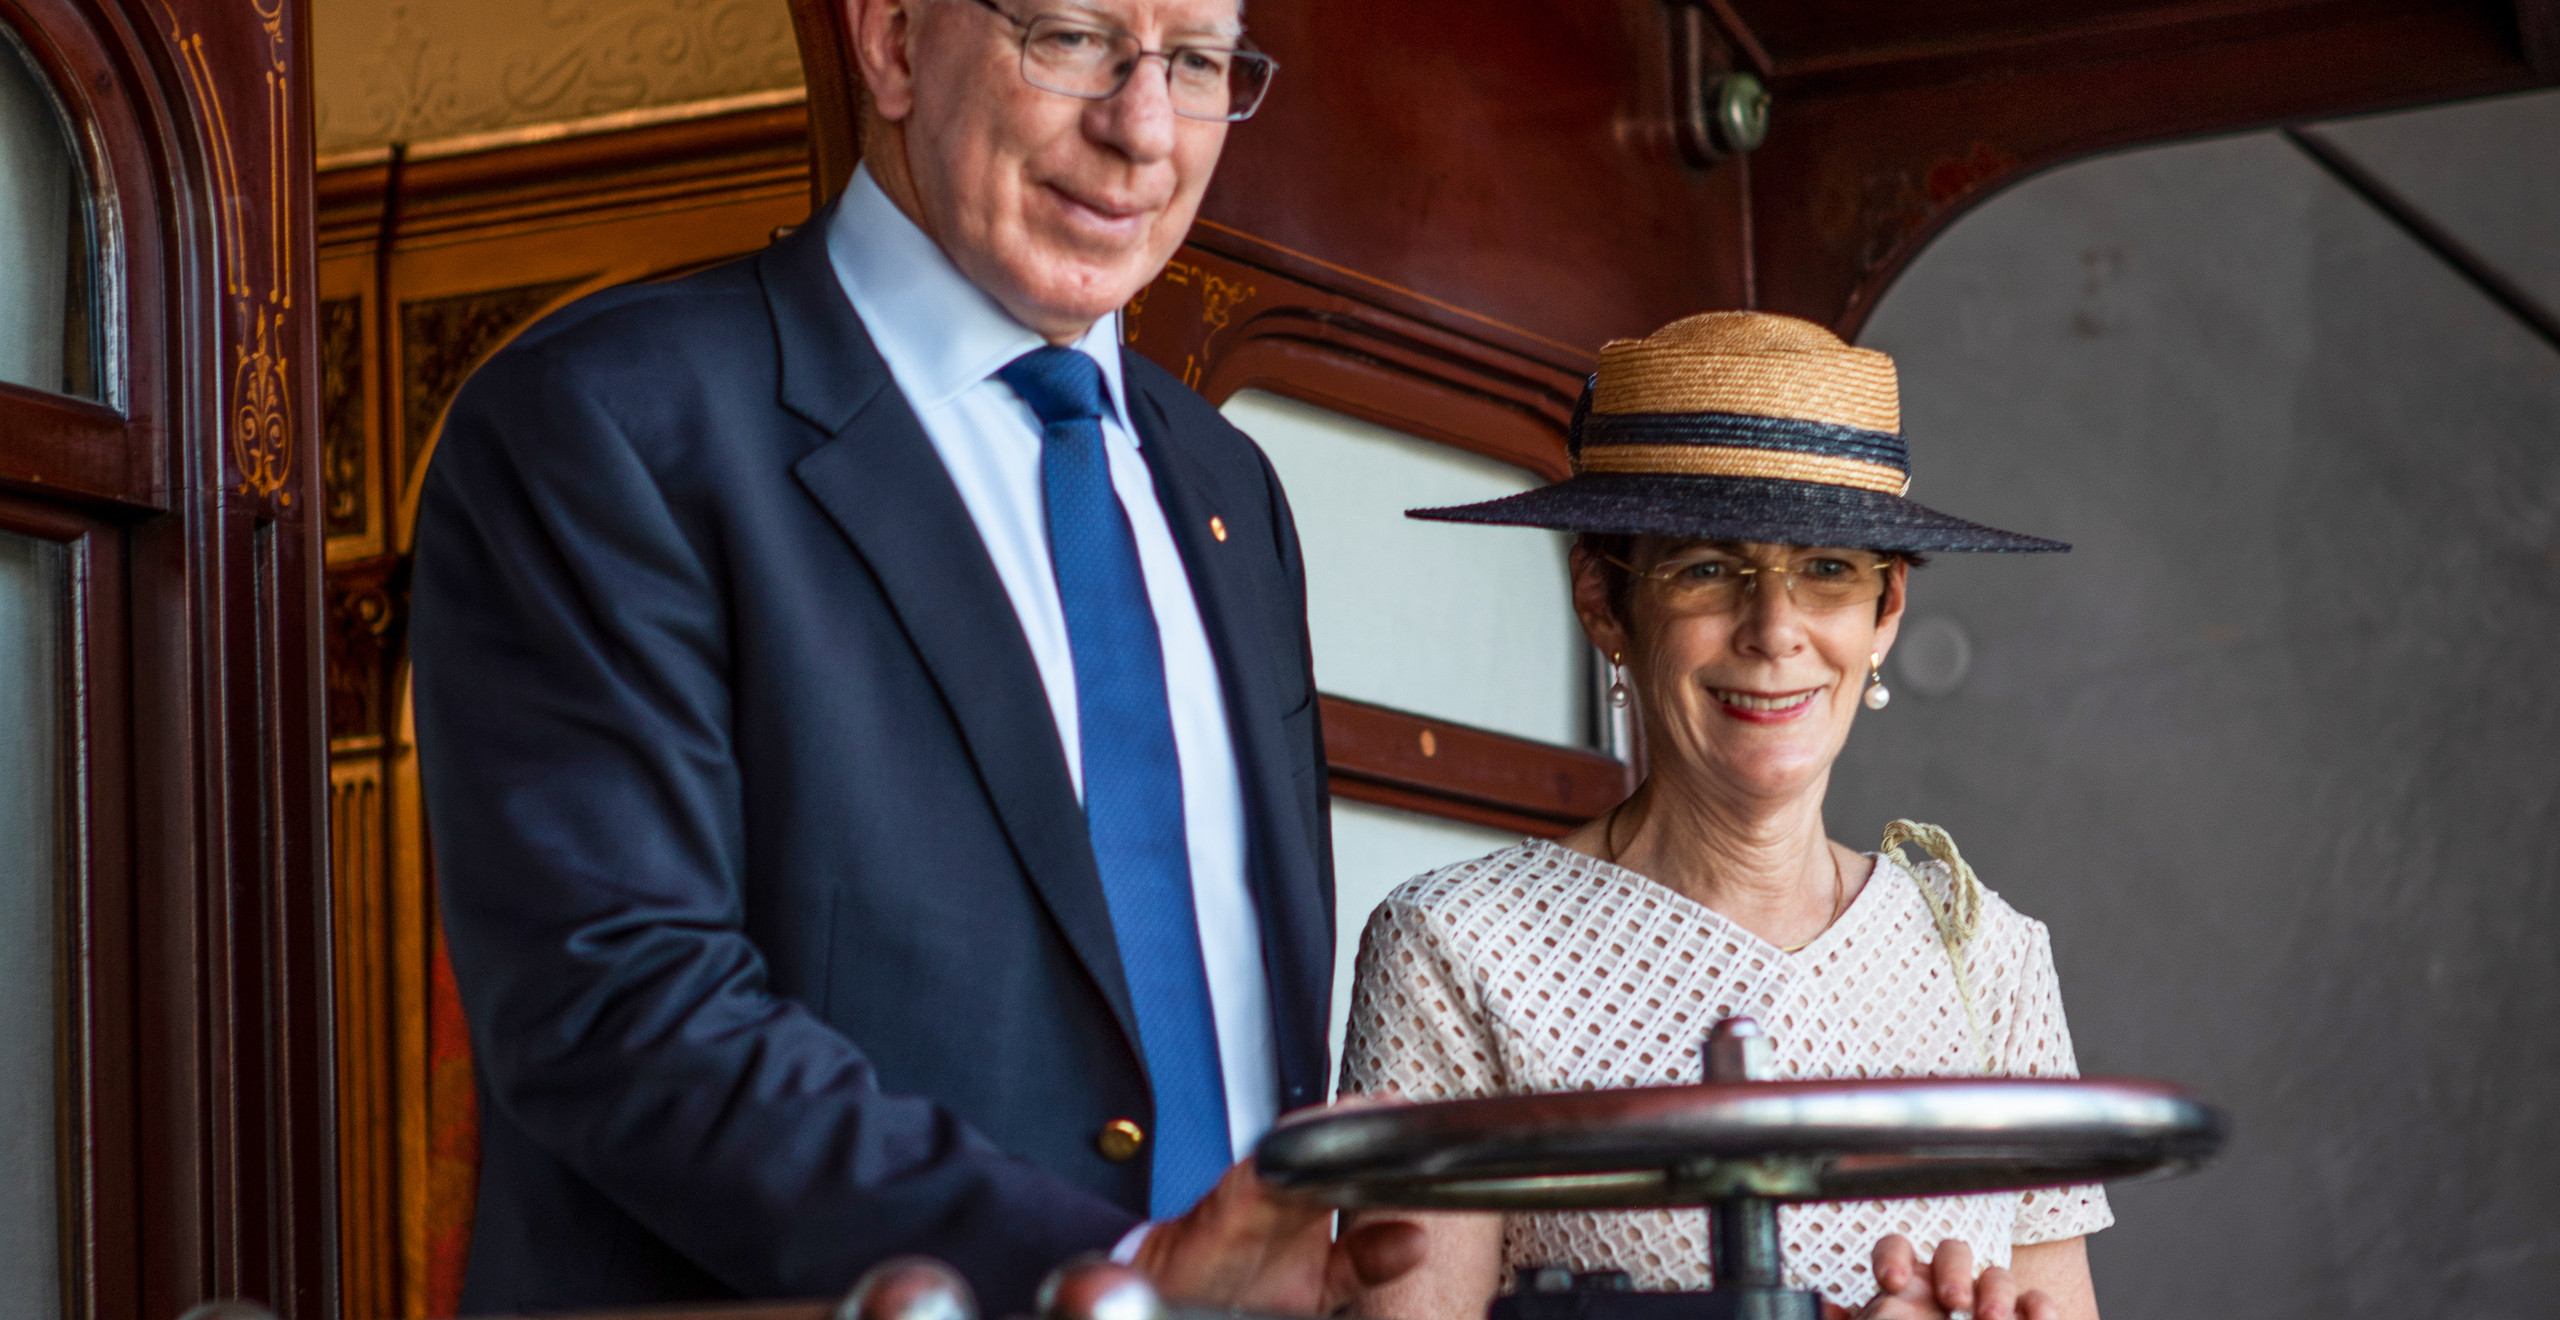 His Excellency and Mrs Hurley visit the Governor-General's carriage. -Trys Eddy Photos